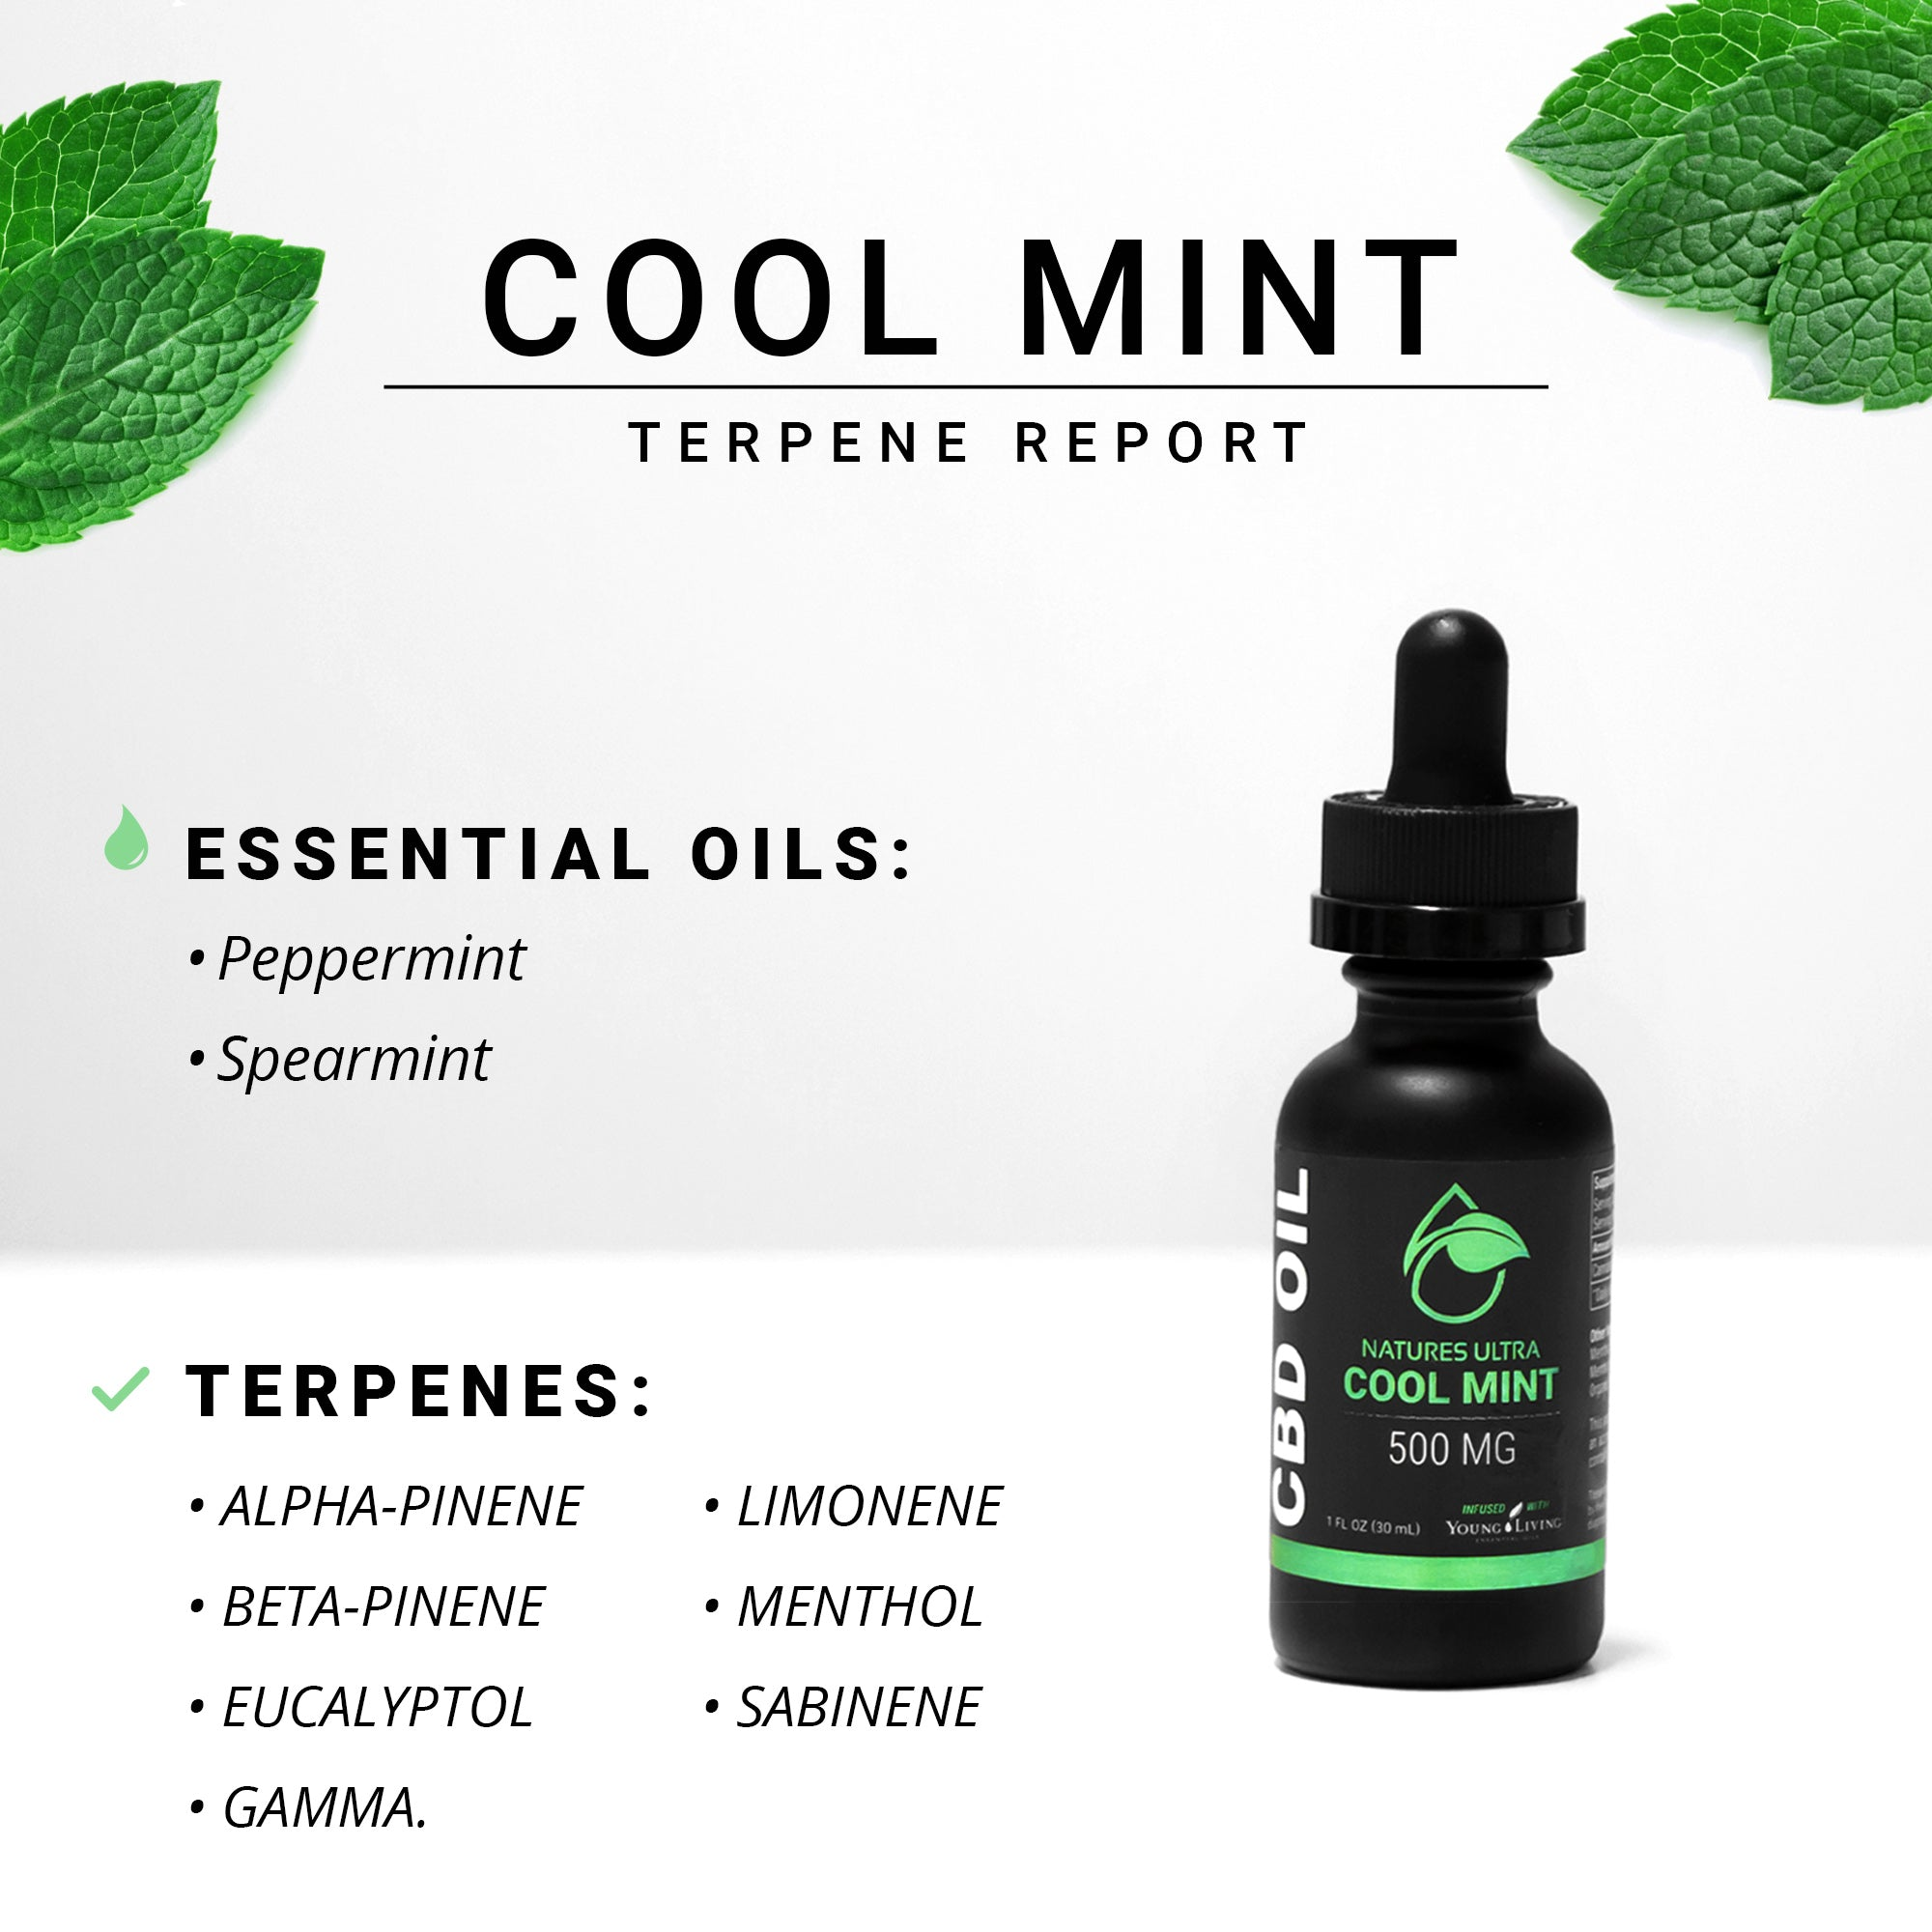 Terpene Report - Cool Mint